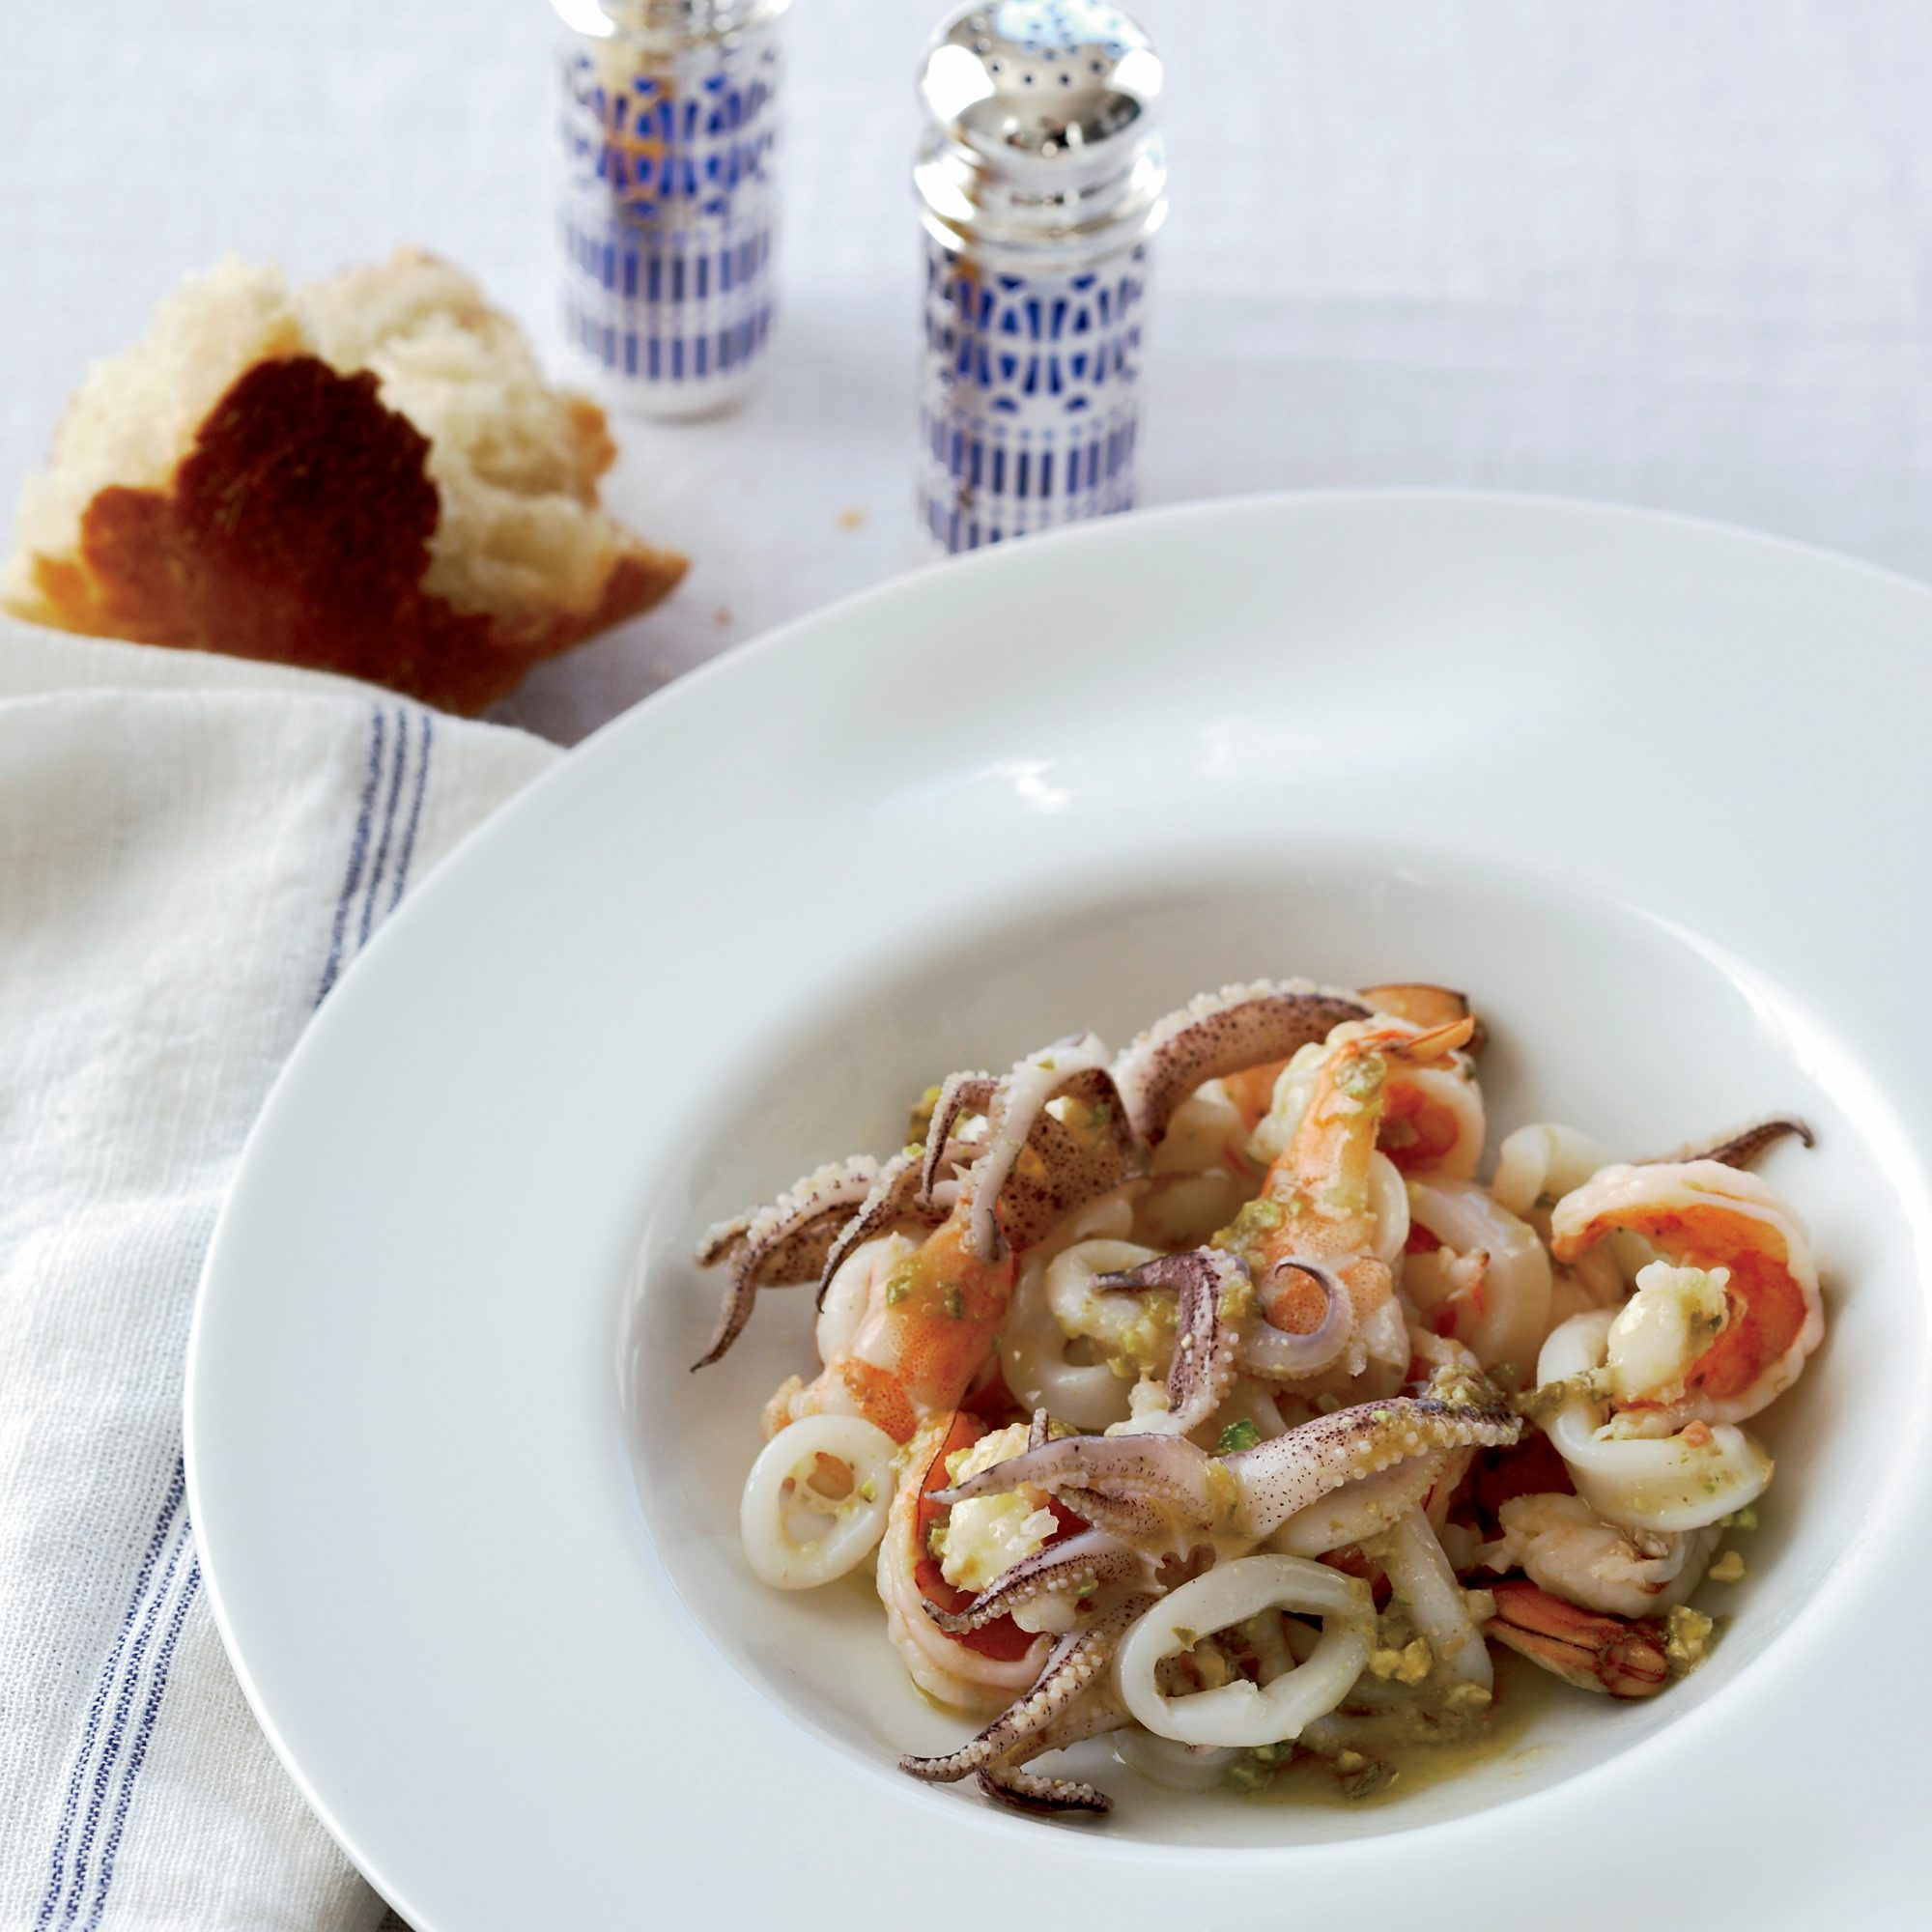 Warm Seafood Salad with Pistachio and Capers